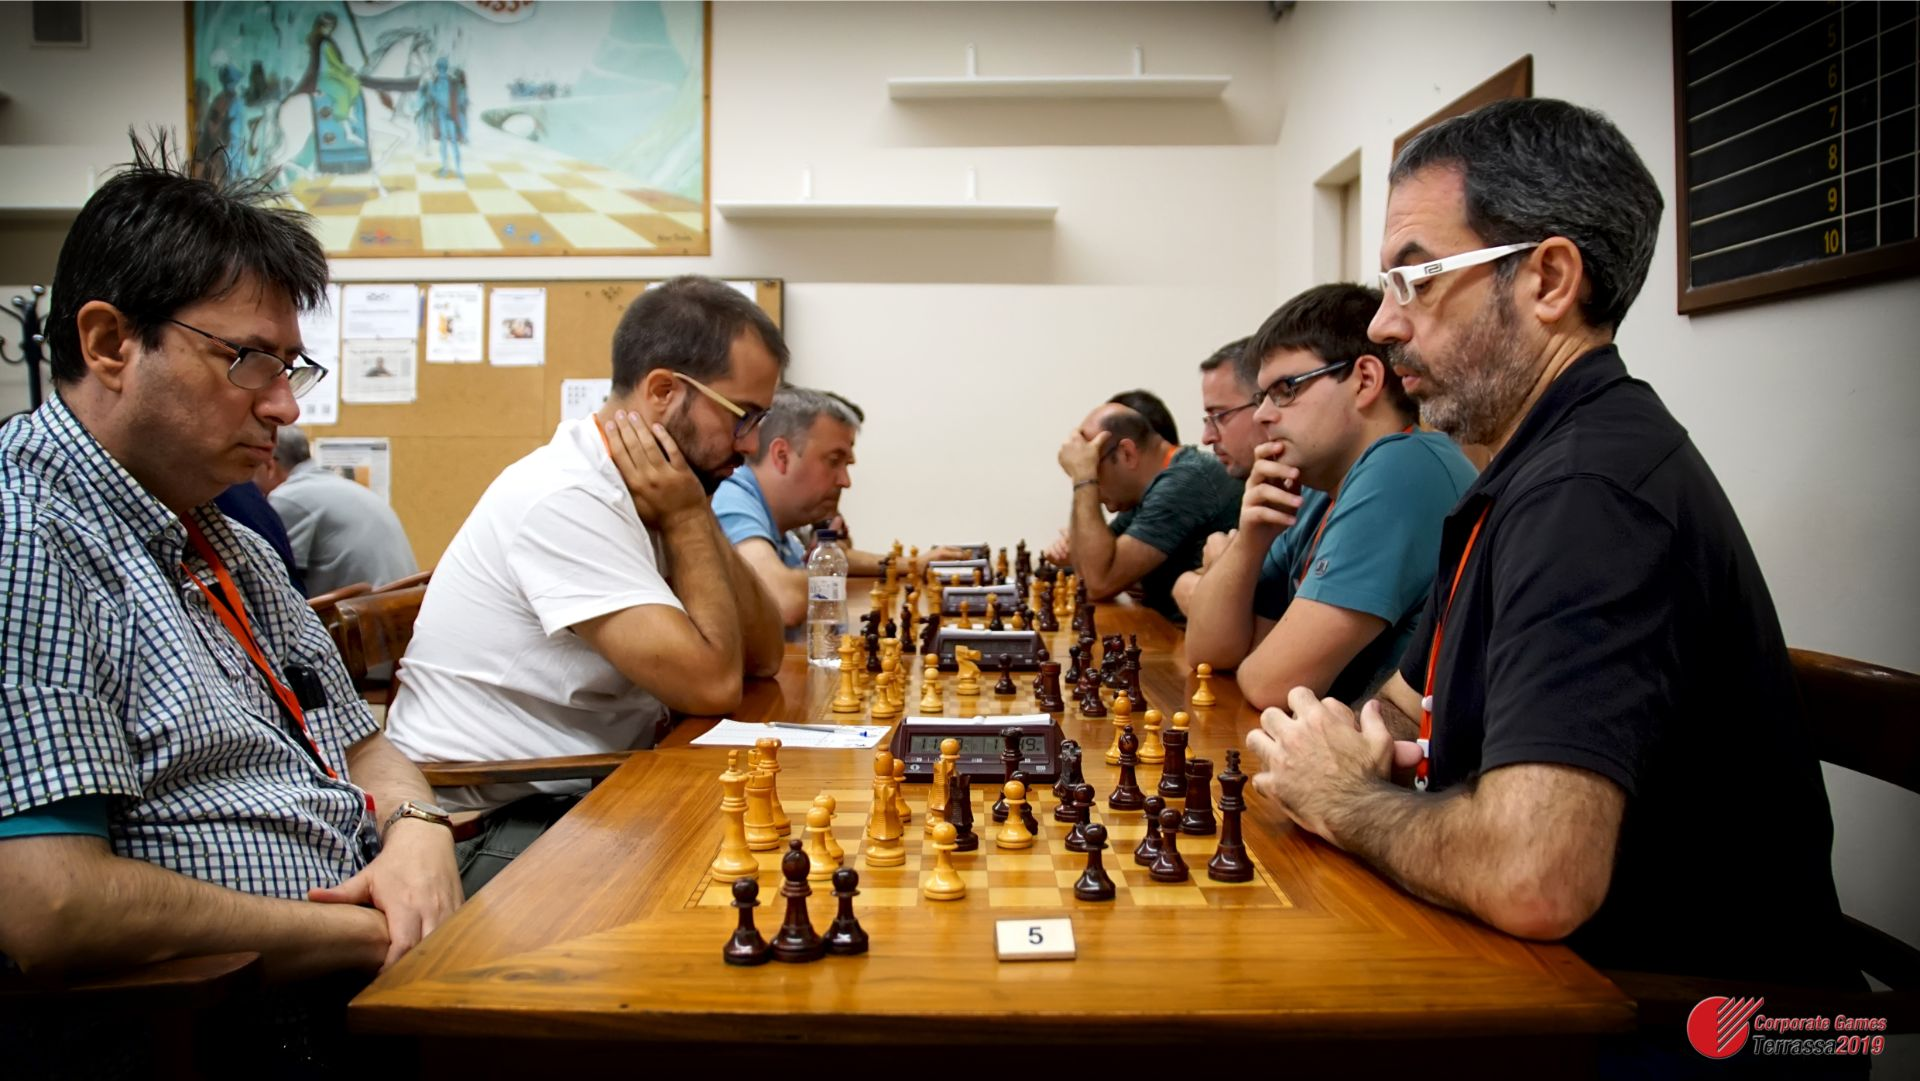 CORPORATE GAMES TERRASSA 2019-09-14 Corp Gam Terr-00410